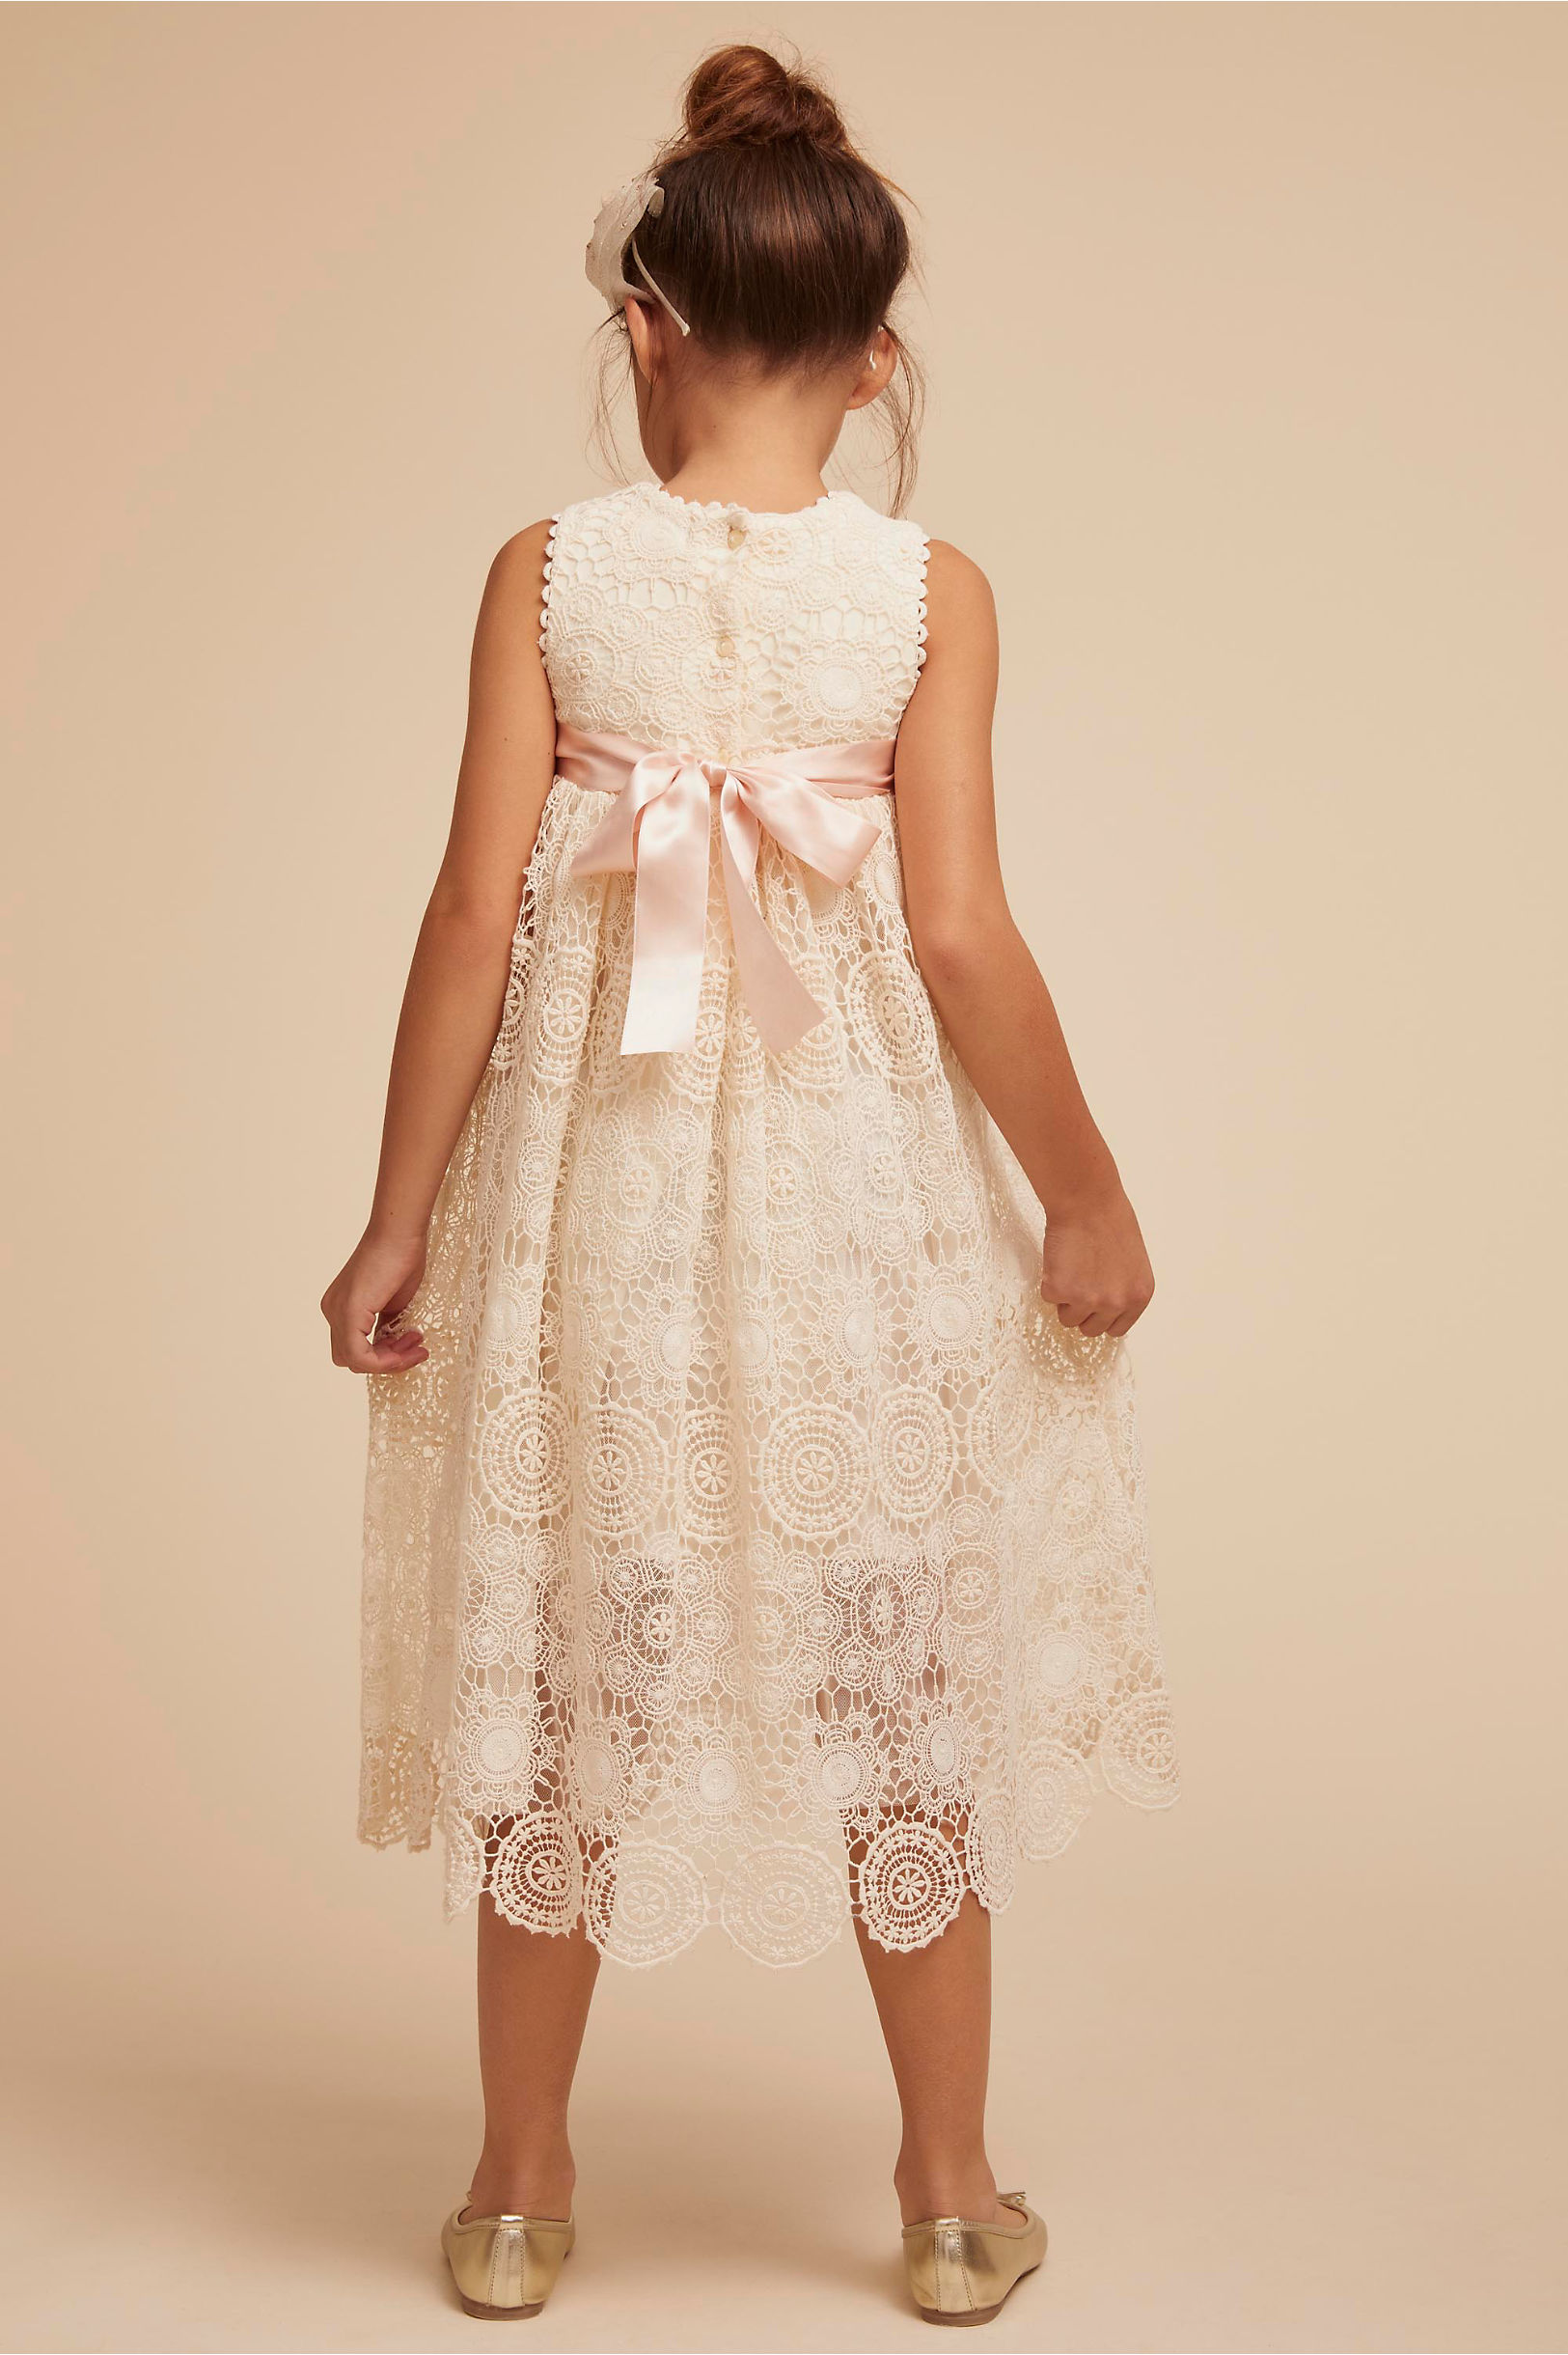 BHLDN Tia Flower Girl Dress with Bow